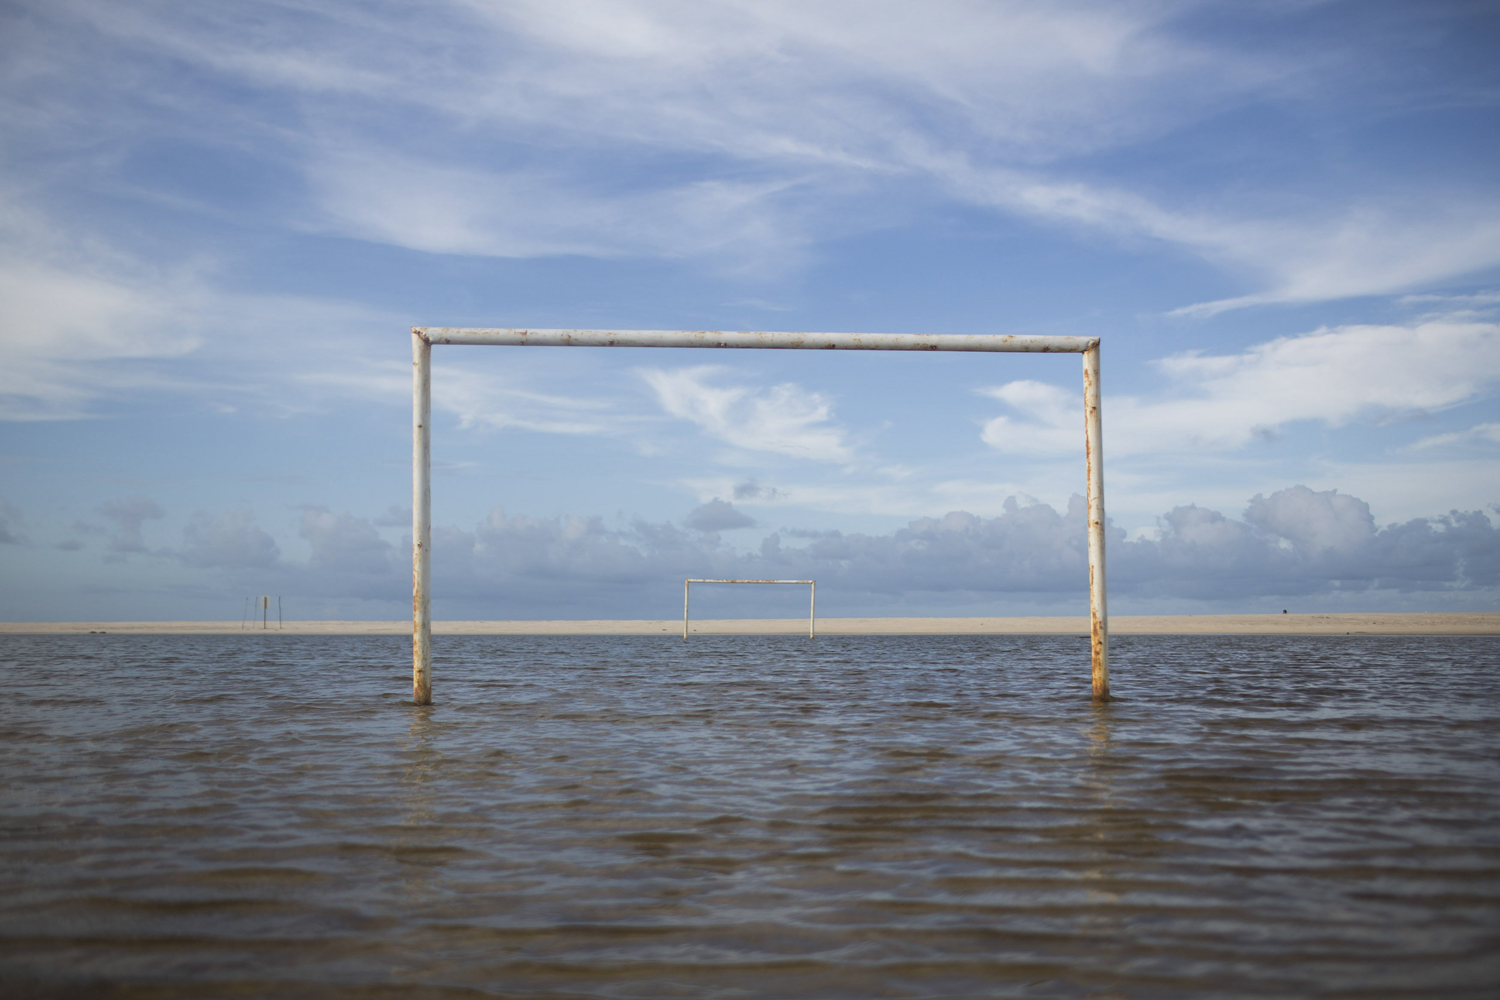 Apr. 26, 2014. A soccer field is seen under the water during a high tide in Beberibe near Fortaleza, Brazil, one of the host cities of the 2014 soccer World Cup.